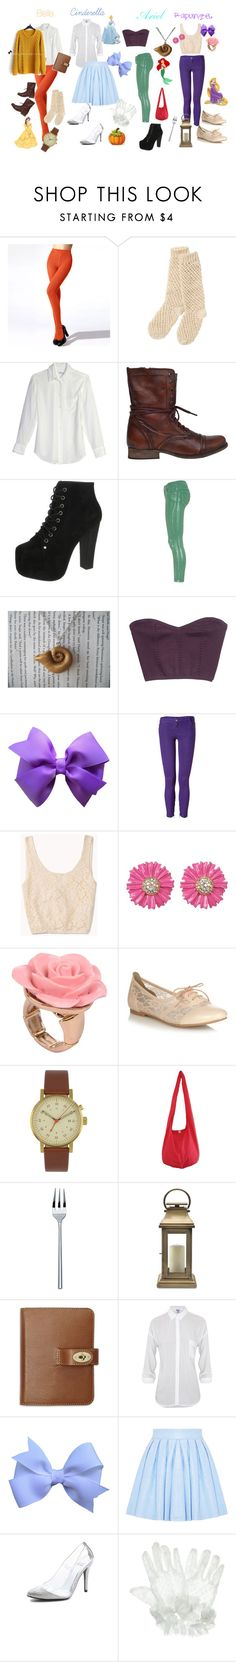 """""""Modern Disney Princess Outfits"""" by kari-the-little-mermaid ❤ liked on Polyvore featuring Moonbasa, People Tree, Equipment, Steve Madden, Disney, Jeffrey Campbell, 75 Faubourg, GUESS by Marciano, Faith Connexion and Forever 21"""